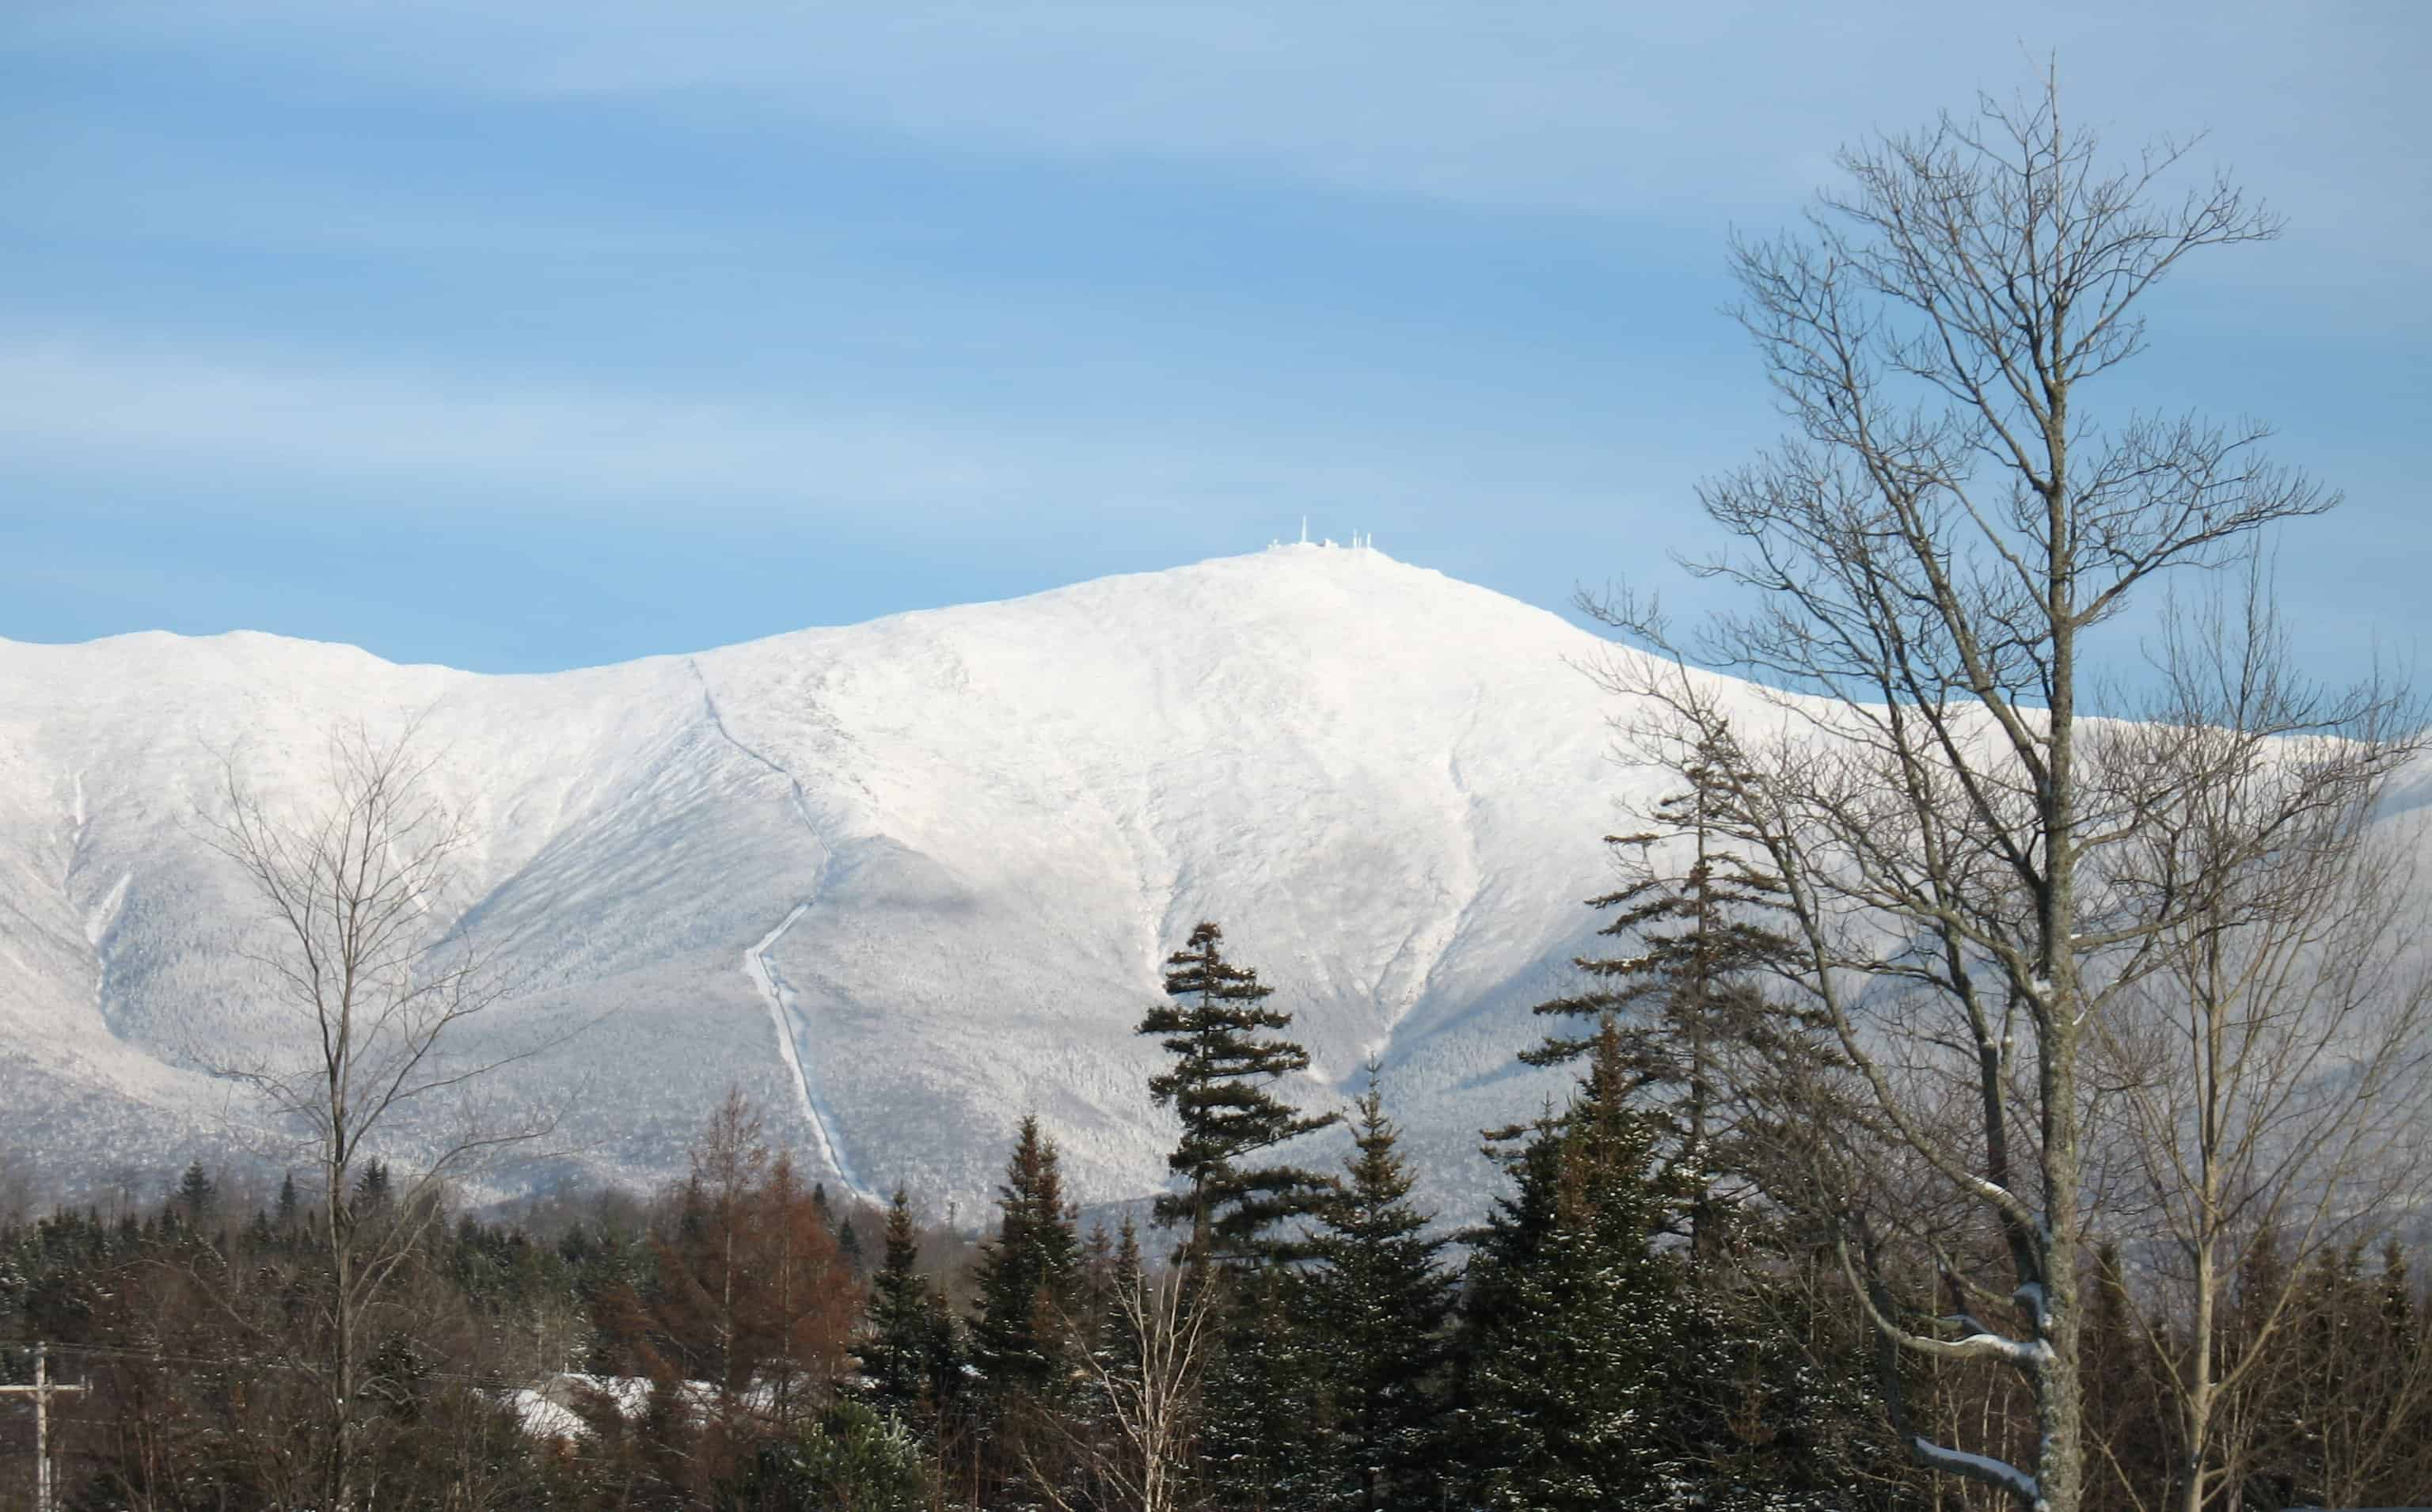 mount washington height